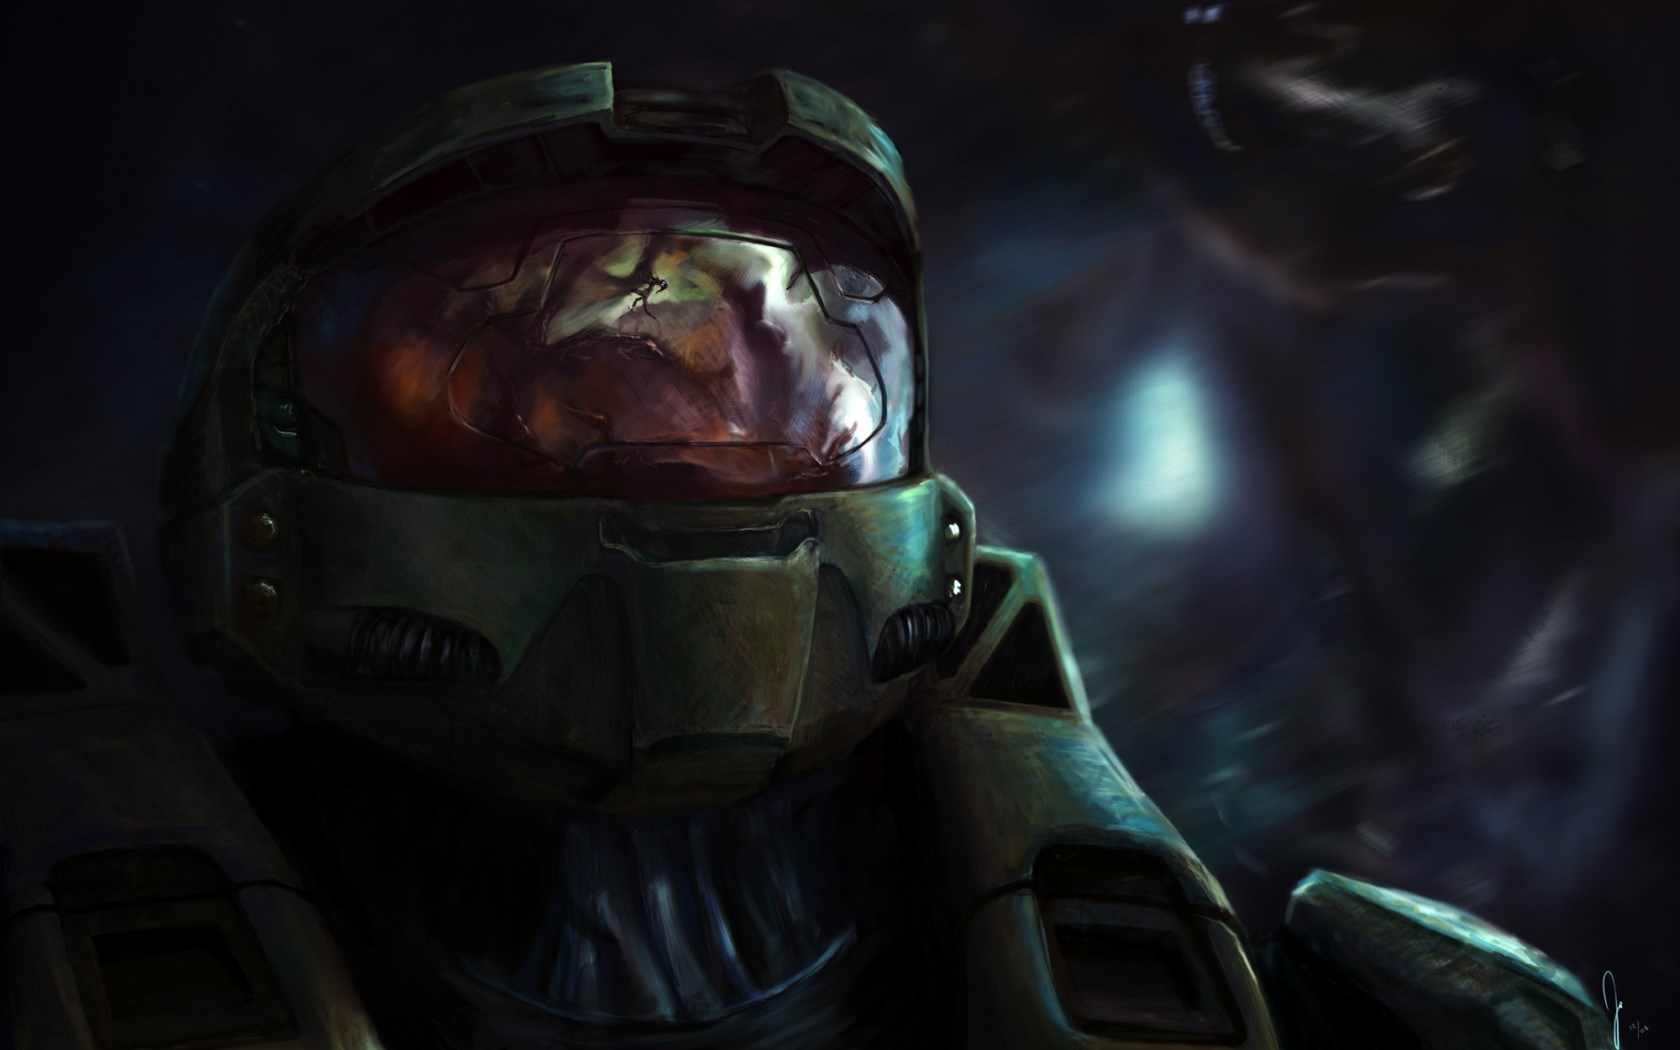 Halo Warrior Armor Helmet Art